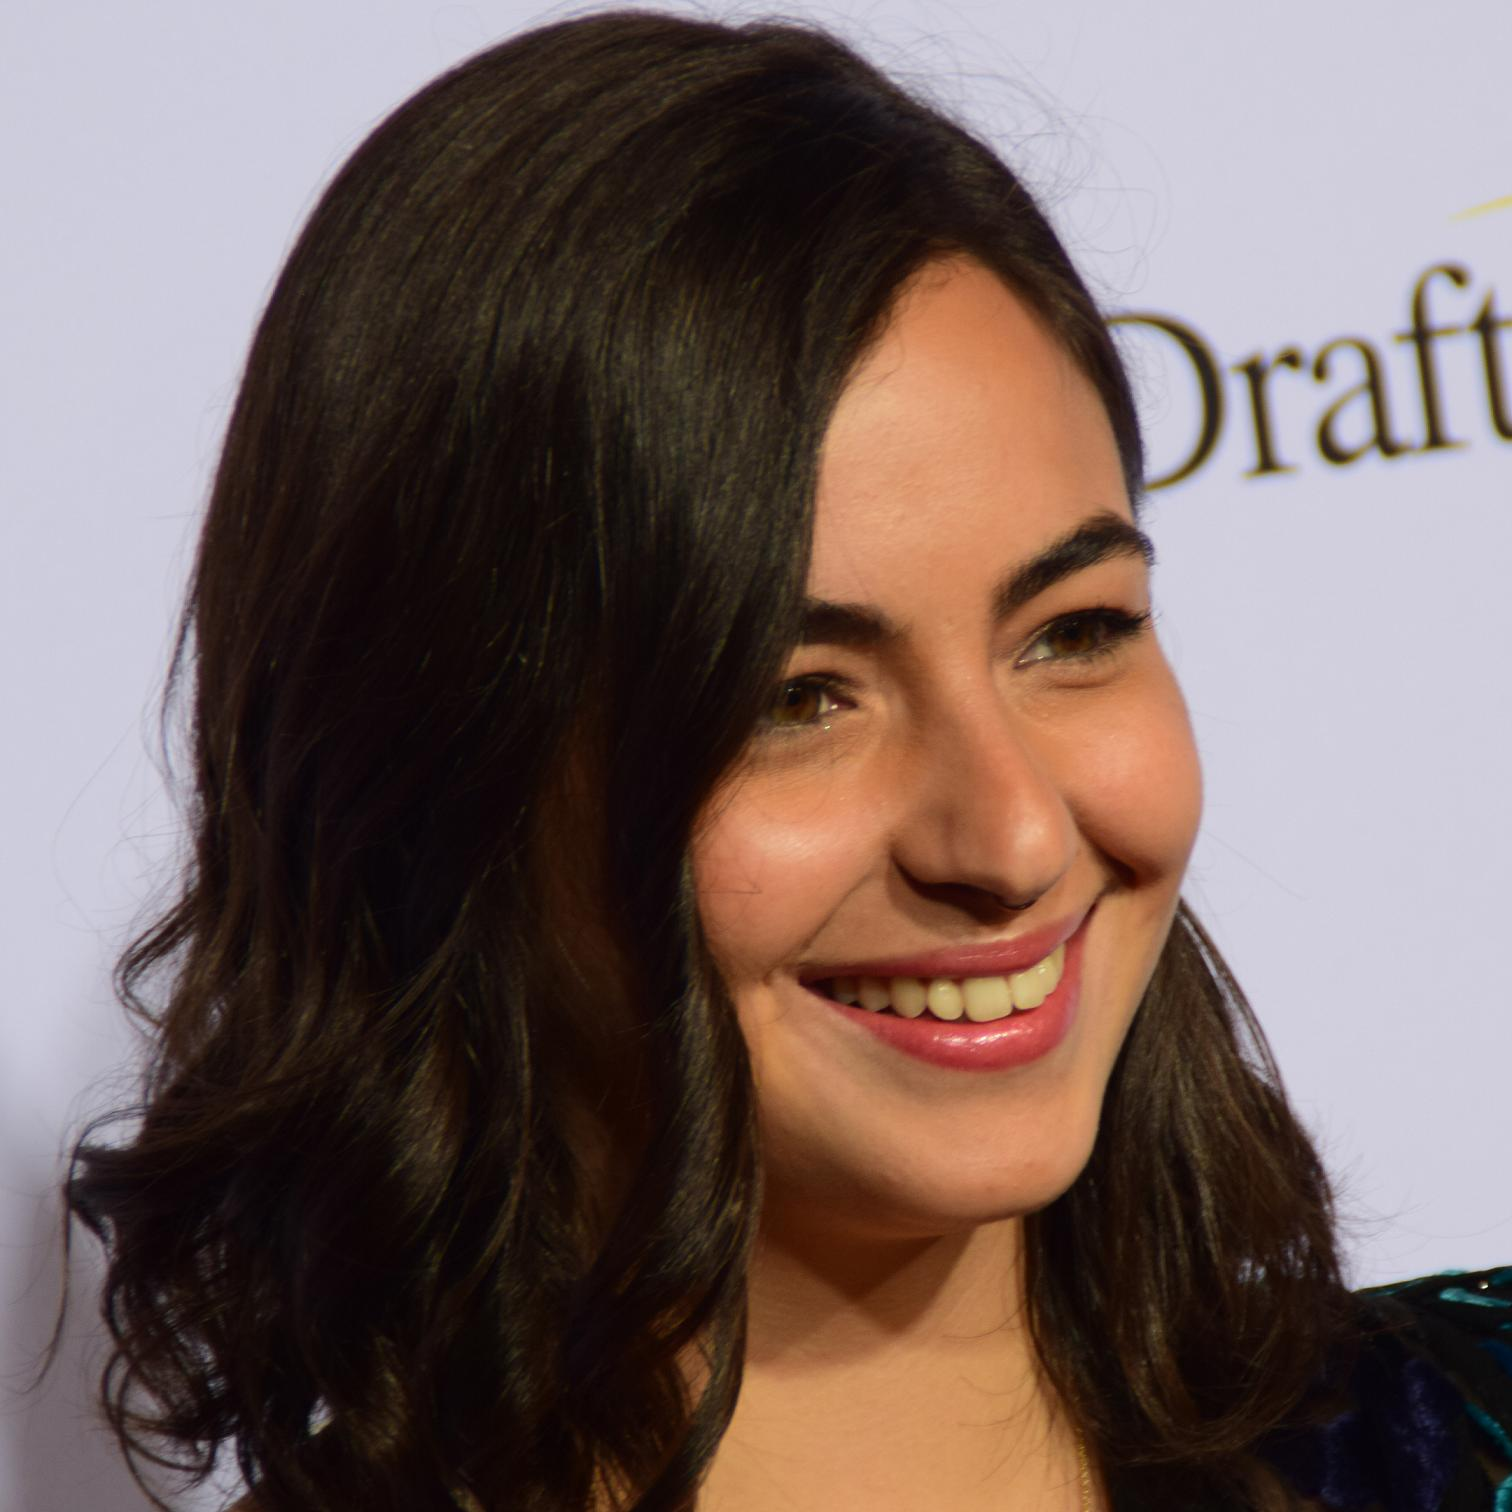 Alanna Masterson Bio, Net Worth, Facts